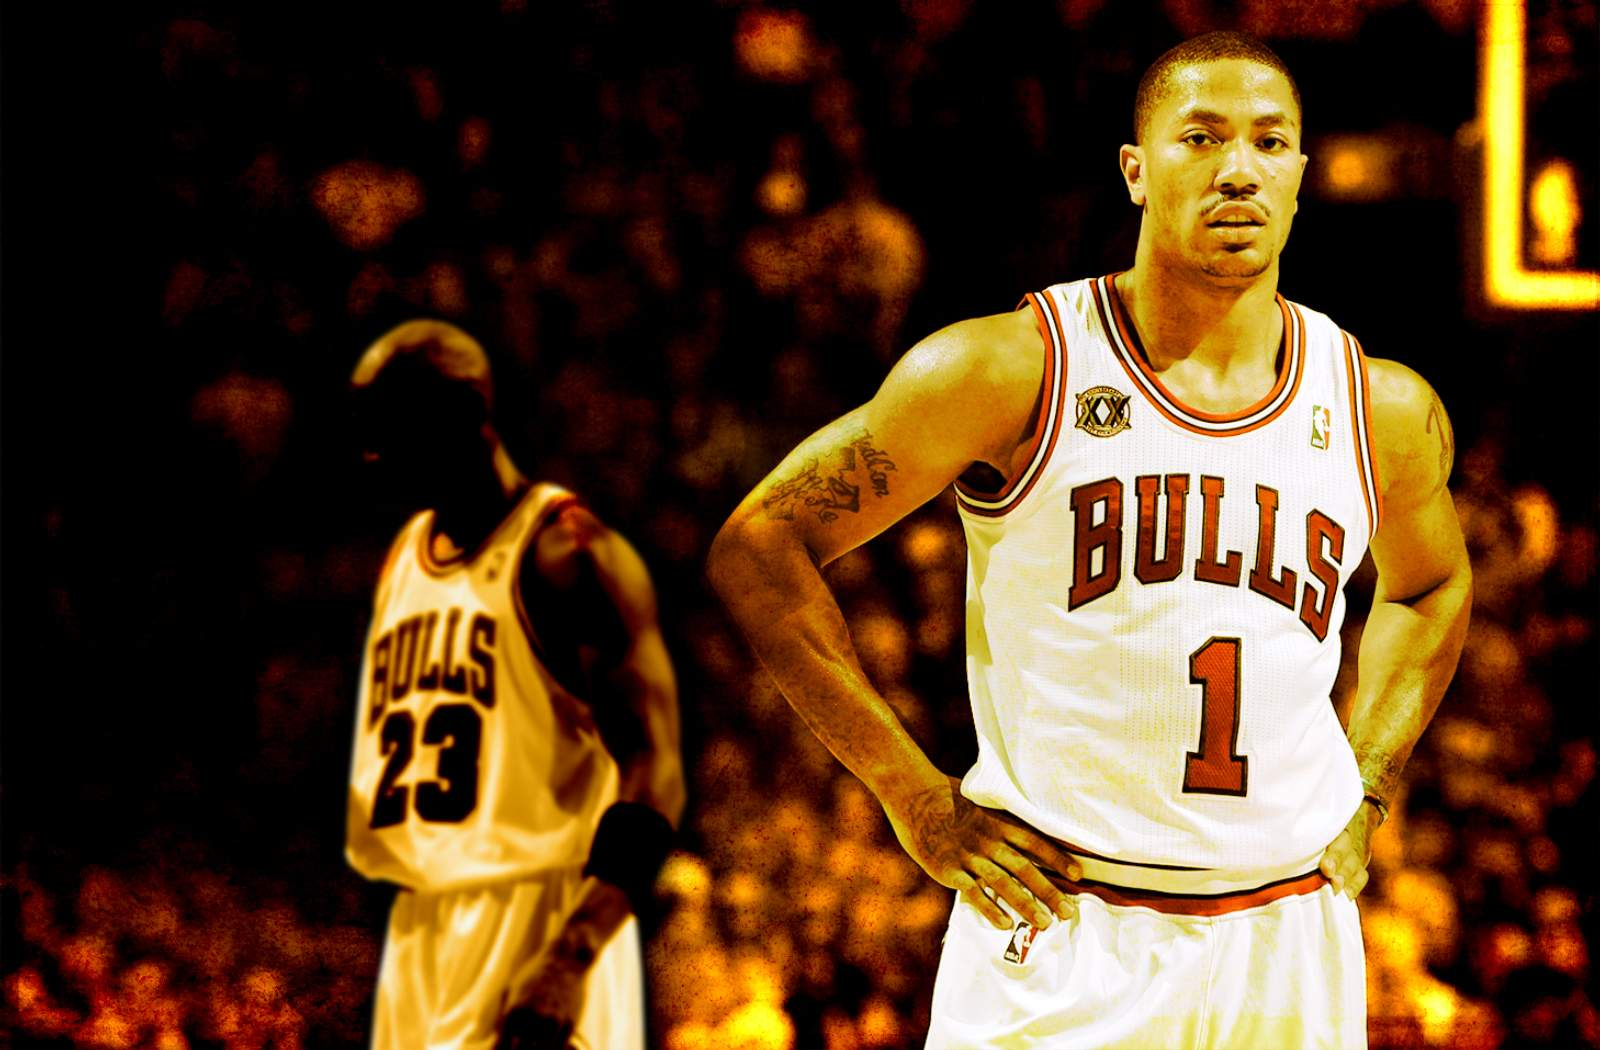 Rose basketball wallpapers NBA Wallpapers Basket Ball Wallpapers 1600x1050